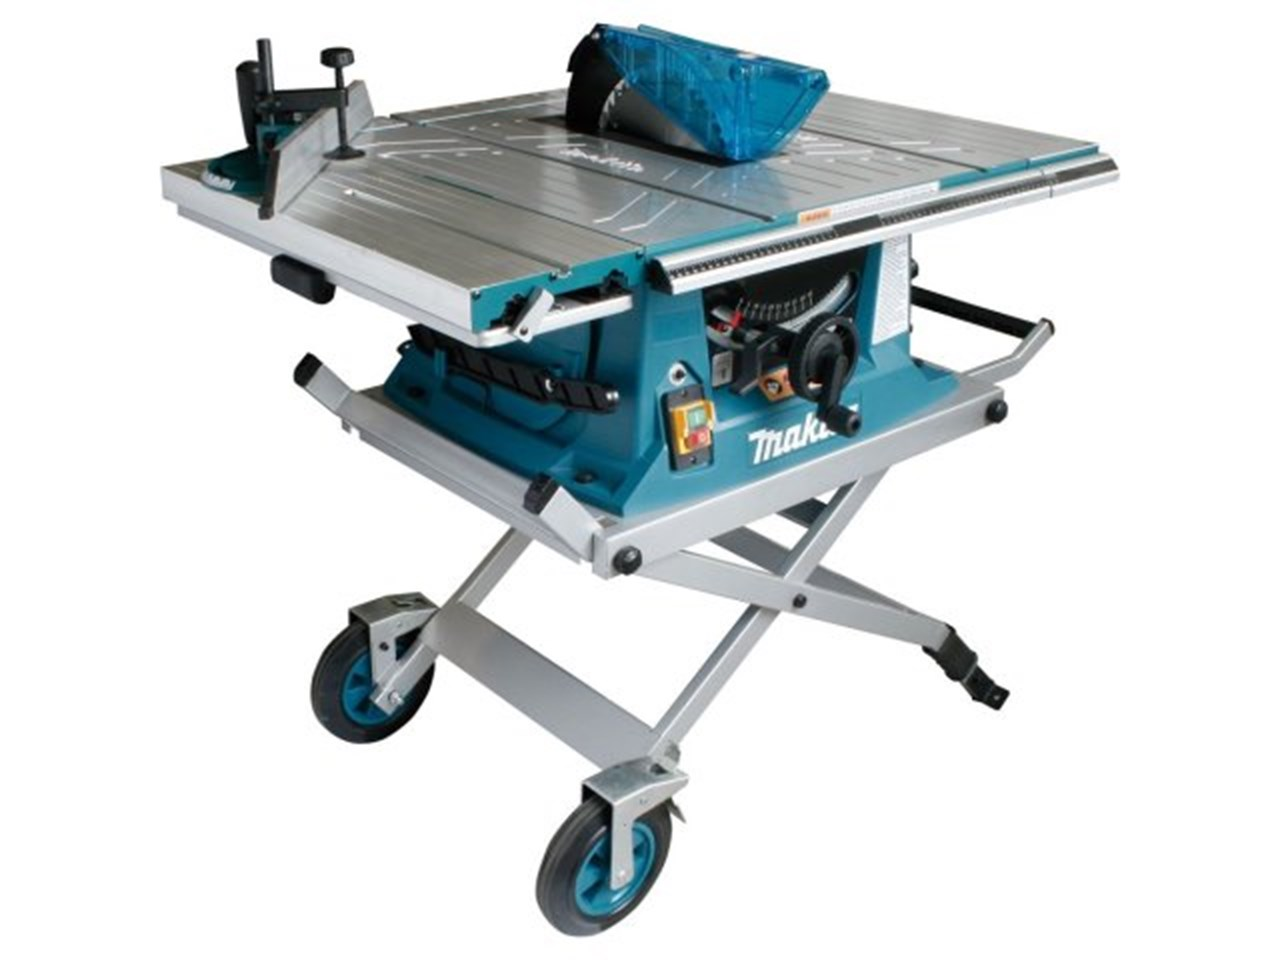 Makita mlt100x 240v 260mm table saw and stand greentooth Image collections